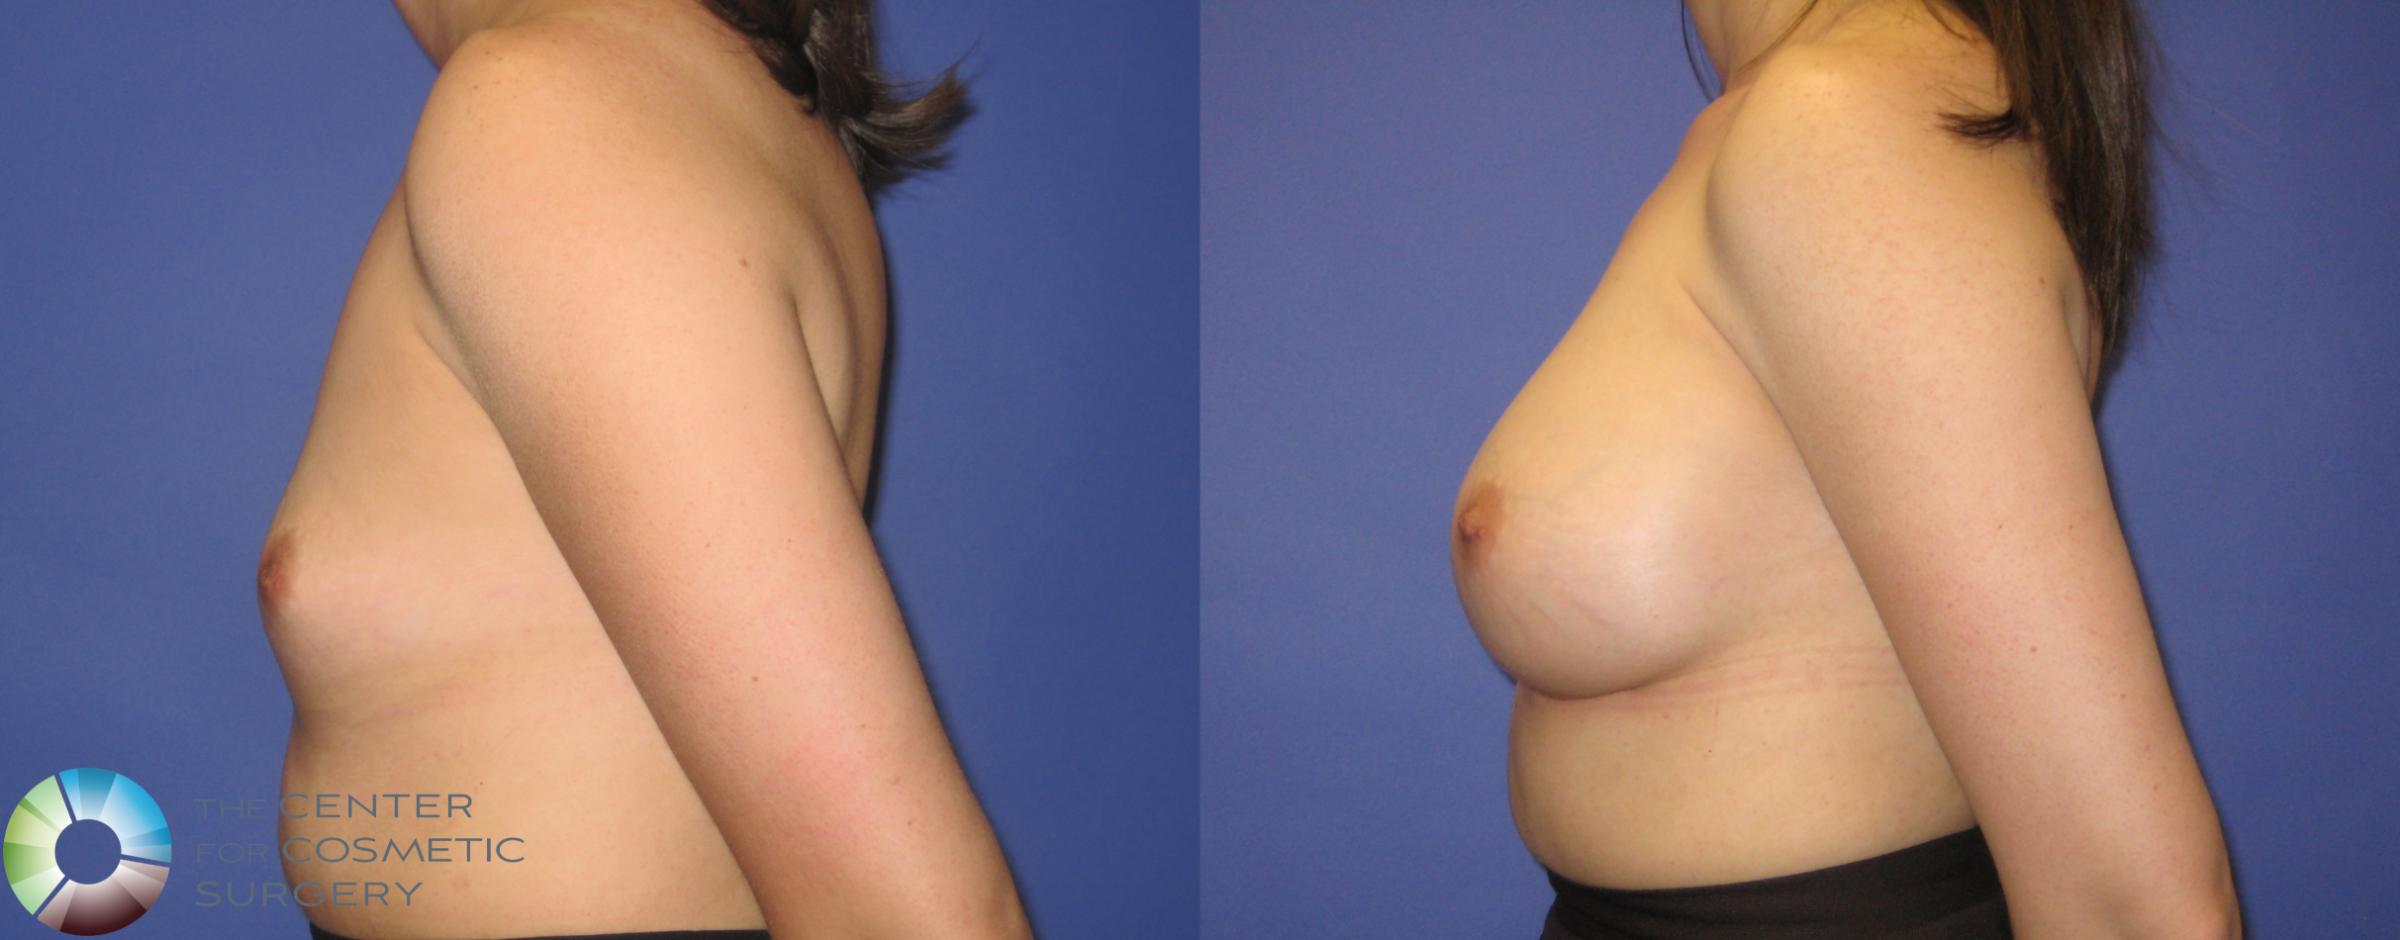 Breast Augmentation Case 290 Before & After View #3 | Golden, CO | The Center for Cosmetic Surgery